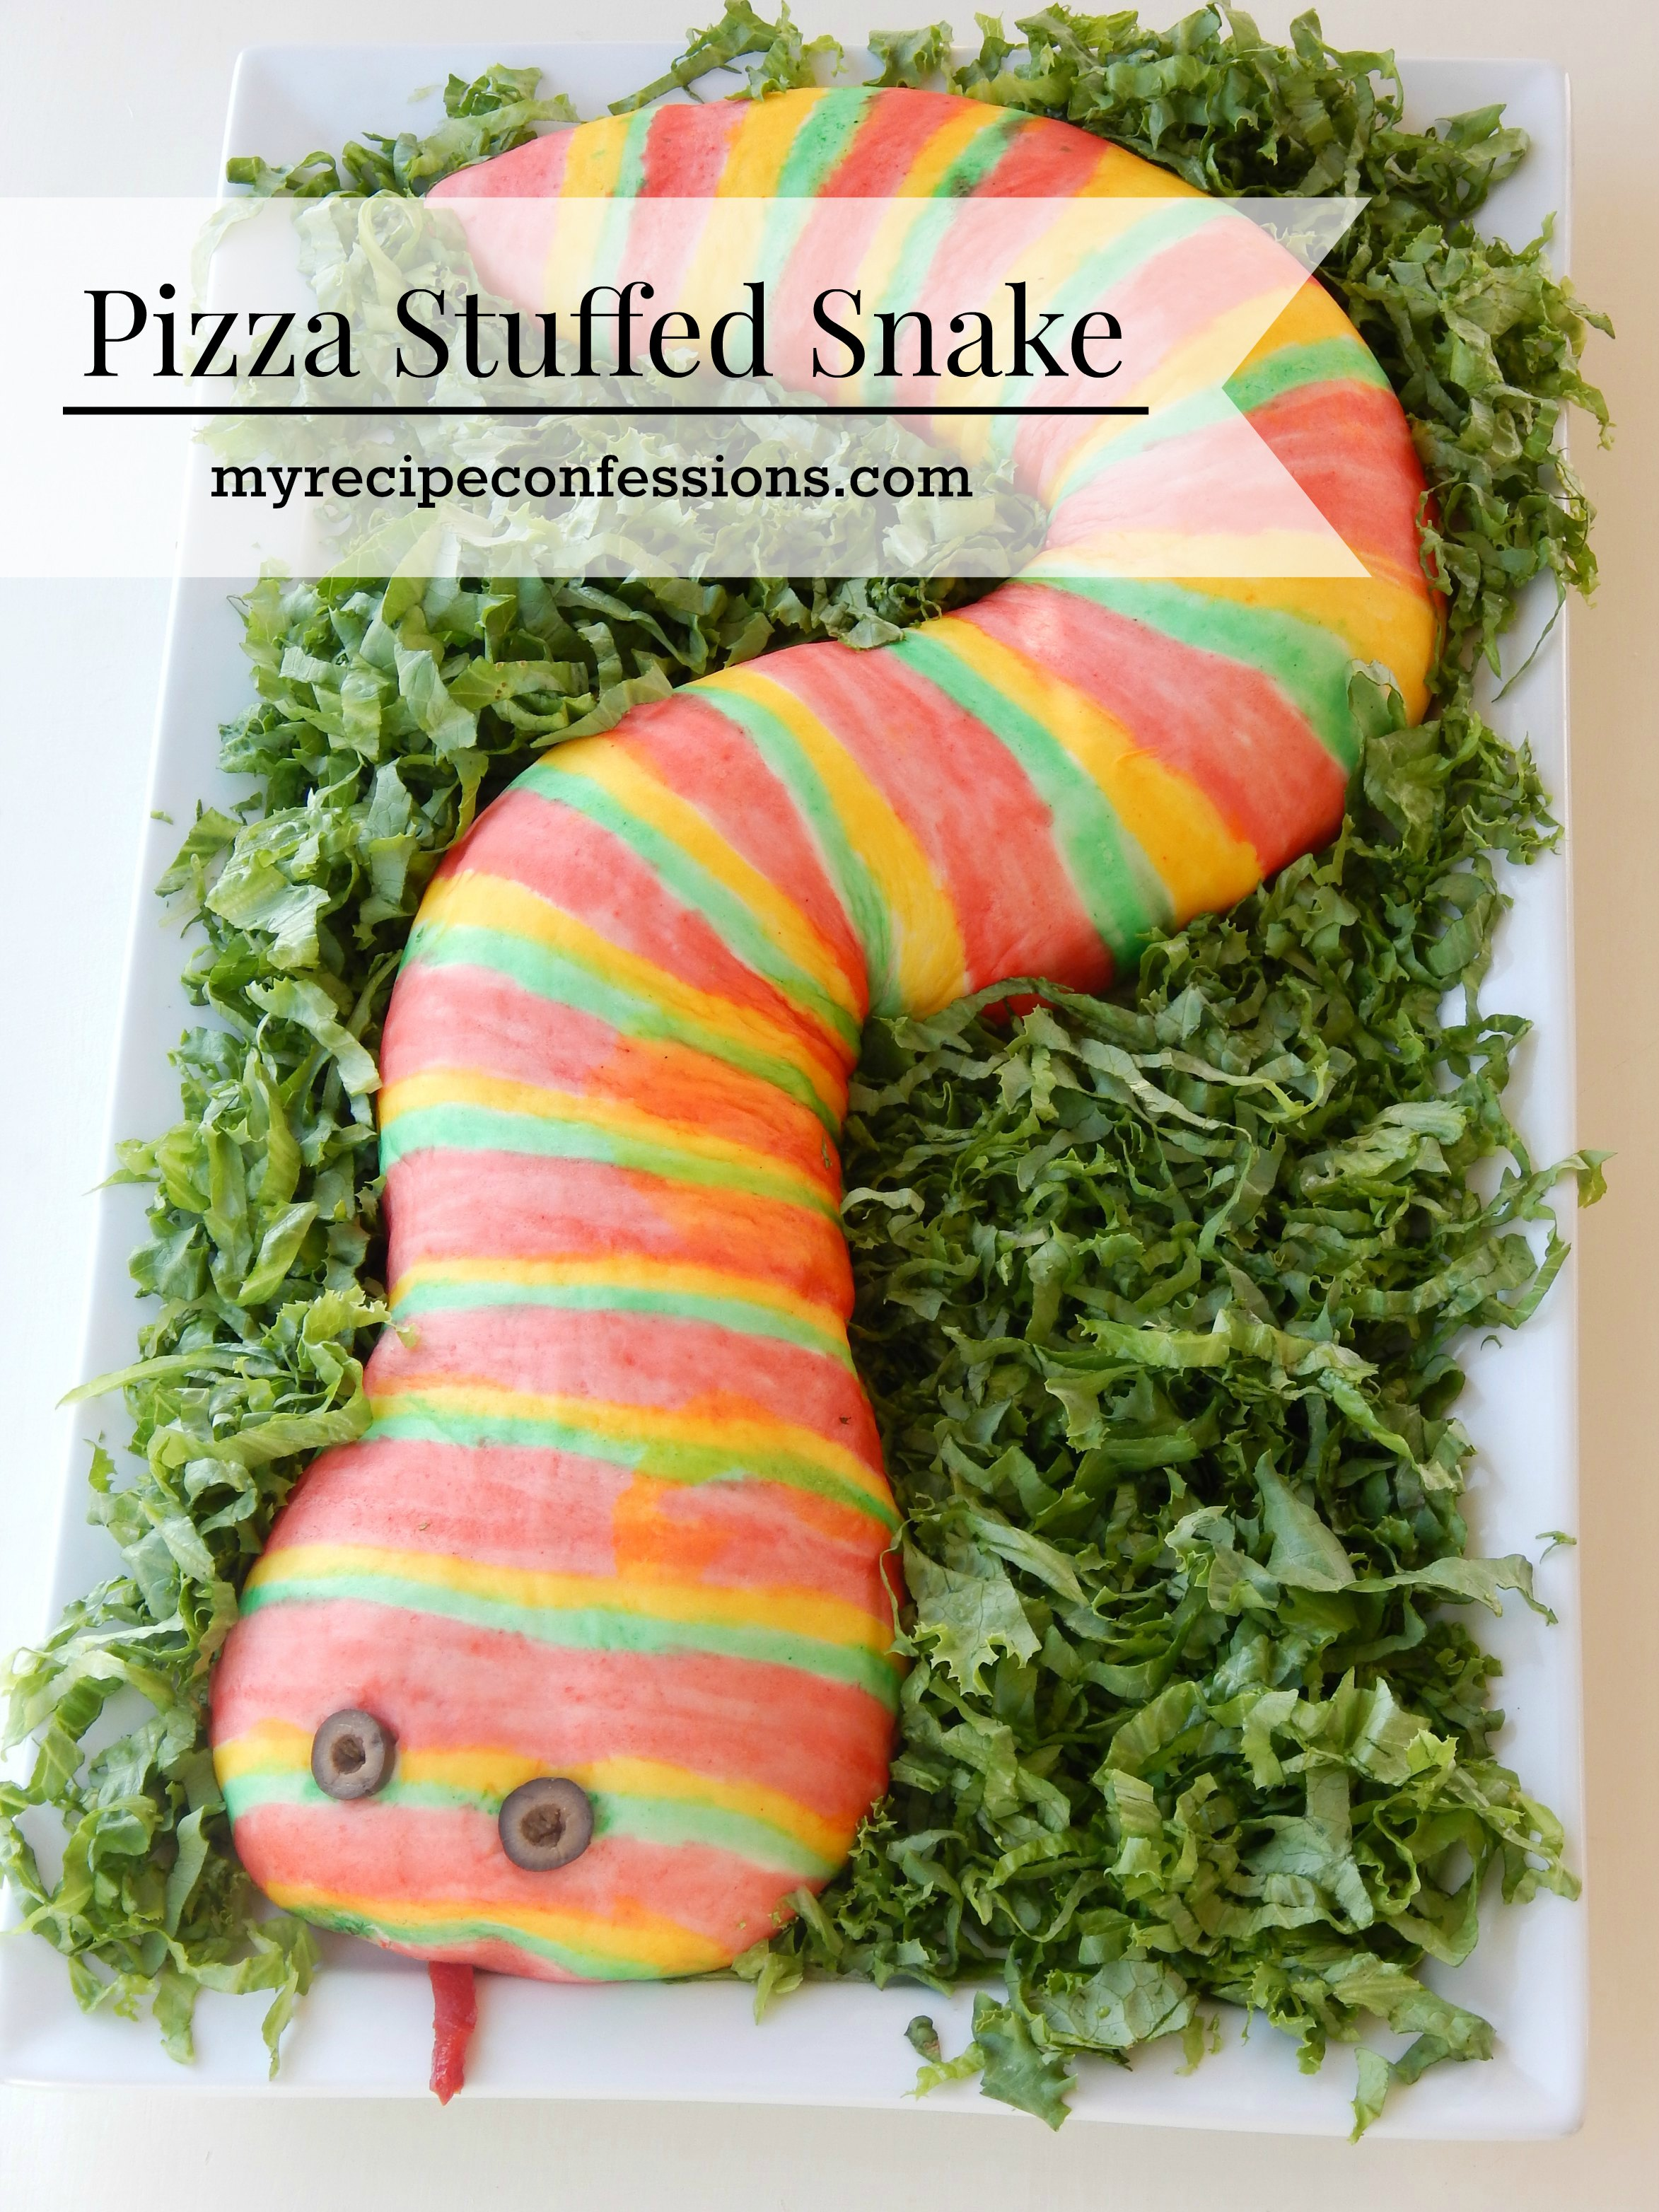 Pizza Stuffed Snake- This easy to follow recipe and tutorial is my boys favorite! You can customize it with your favorite pizza toppings. My kids love to help paint the snake. You will be shocked how simple the food coloring paint is to make. This snake is a great main dish to serve at a Halloween party, birthday party, or Harry Potter party. Serve it with a side of blood a.k.a marinara sauce for a huge party hit!